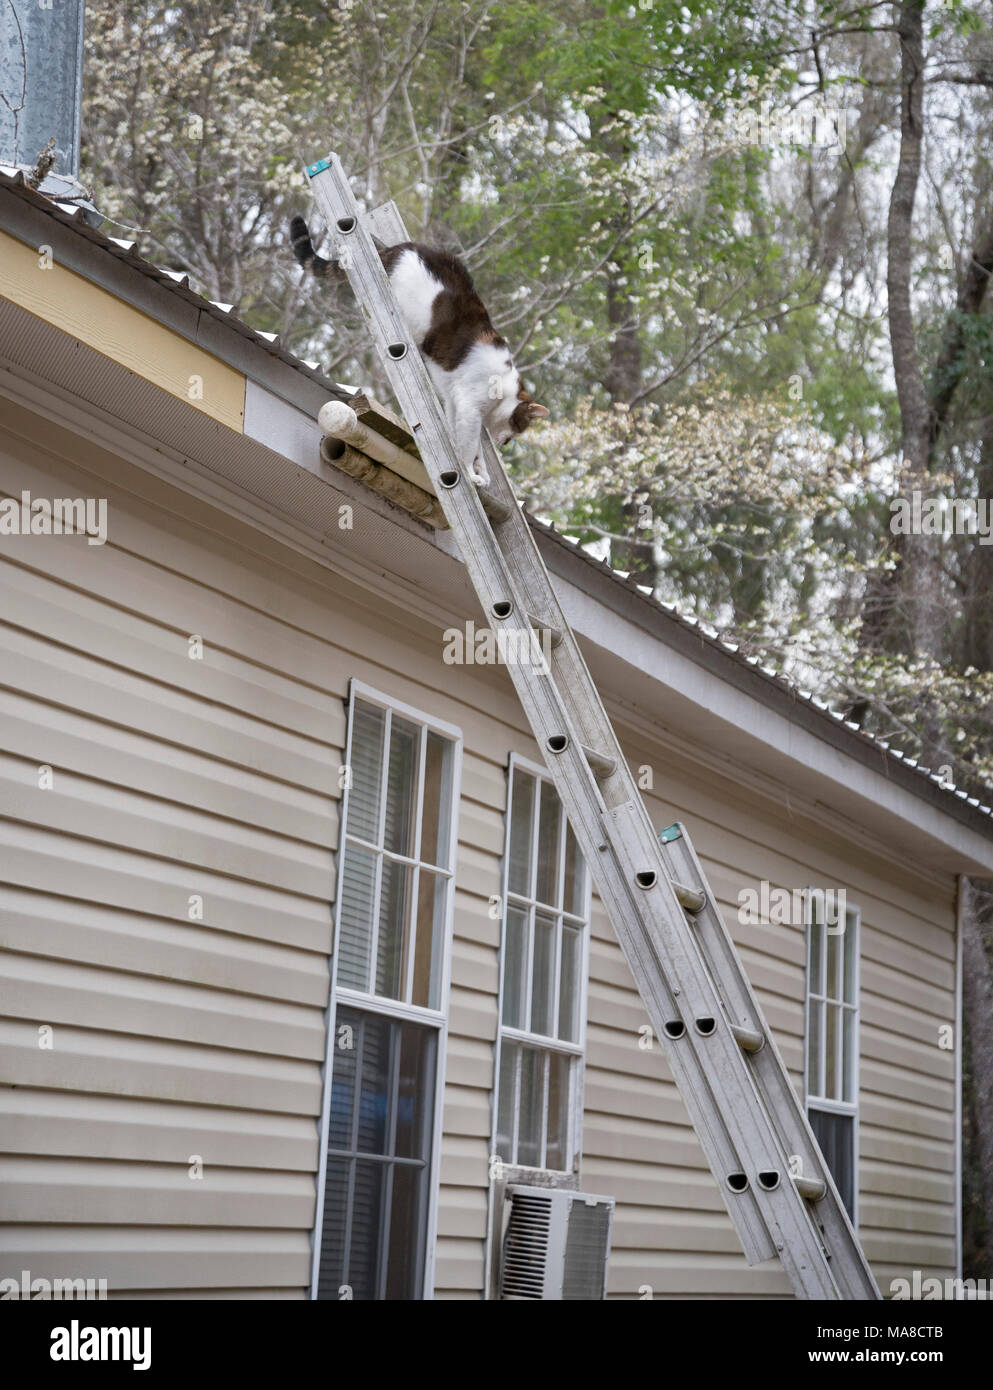 Missy the cat descending a ladder from a roof. - Stock Image